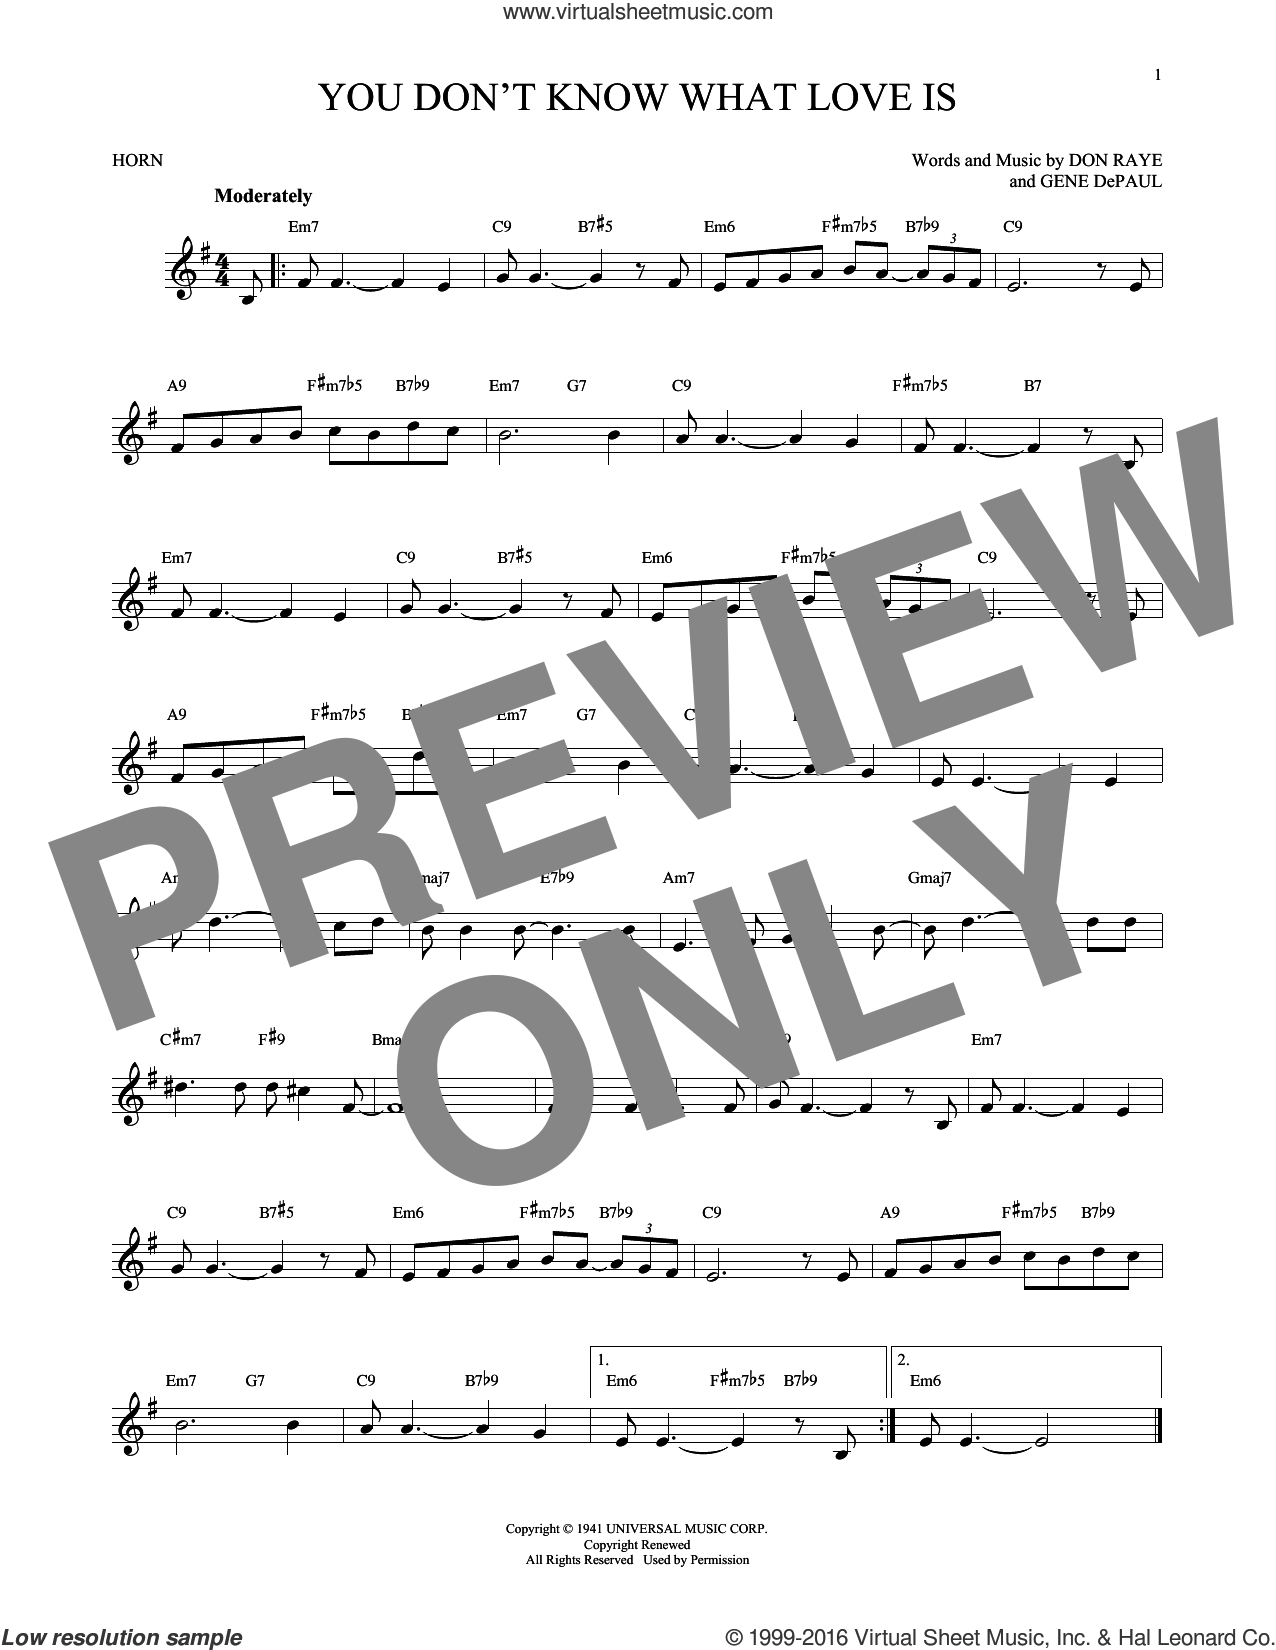 You Don't Know What Love Is sheet music for horn solo by Don Raye, Carol Bruce and Gene DePaul, intermediate skill level